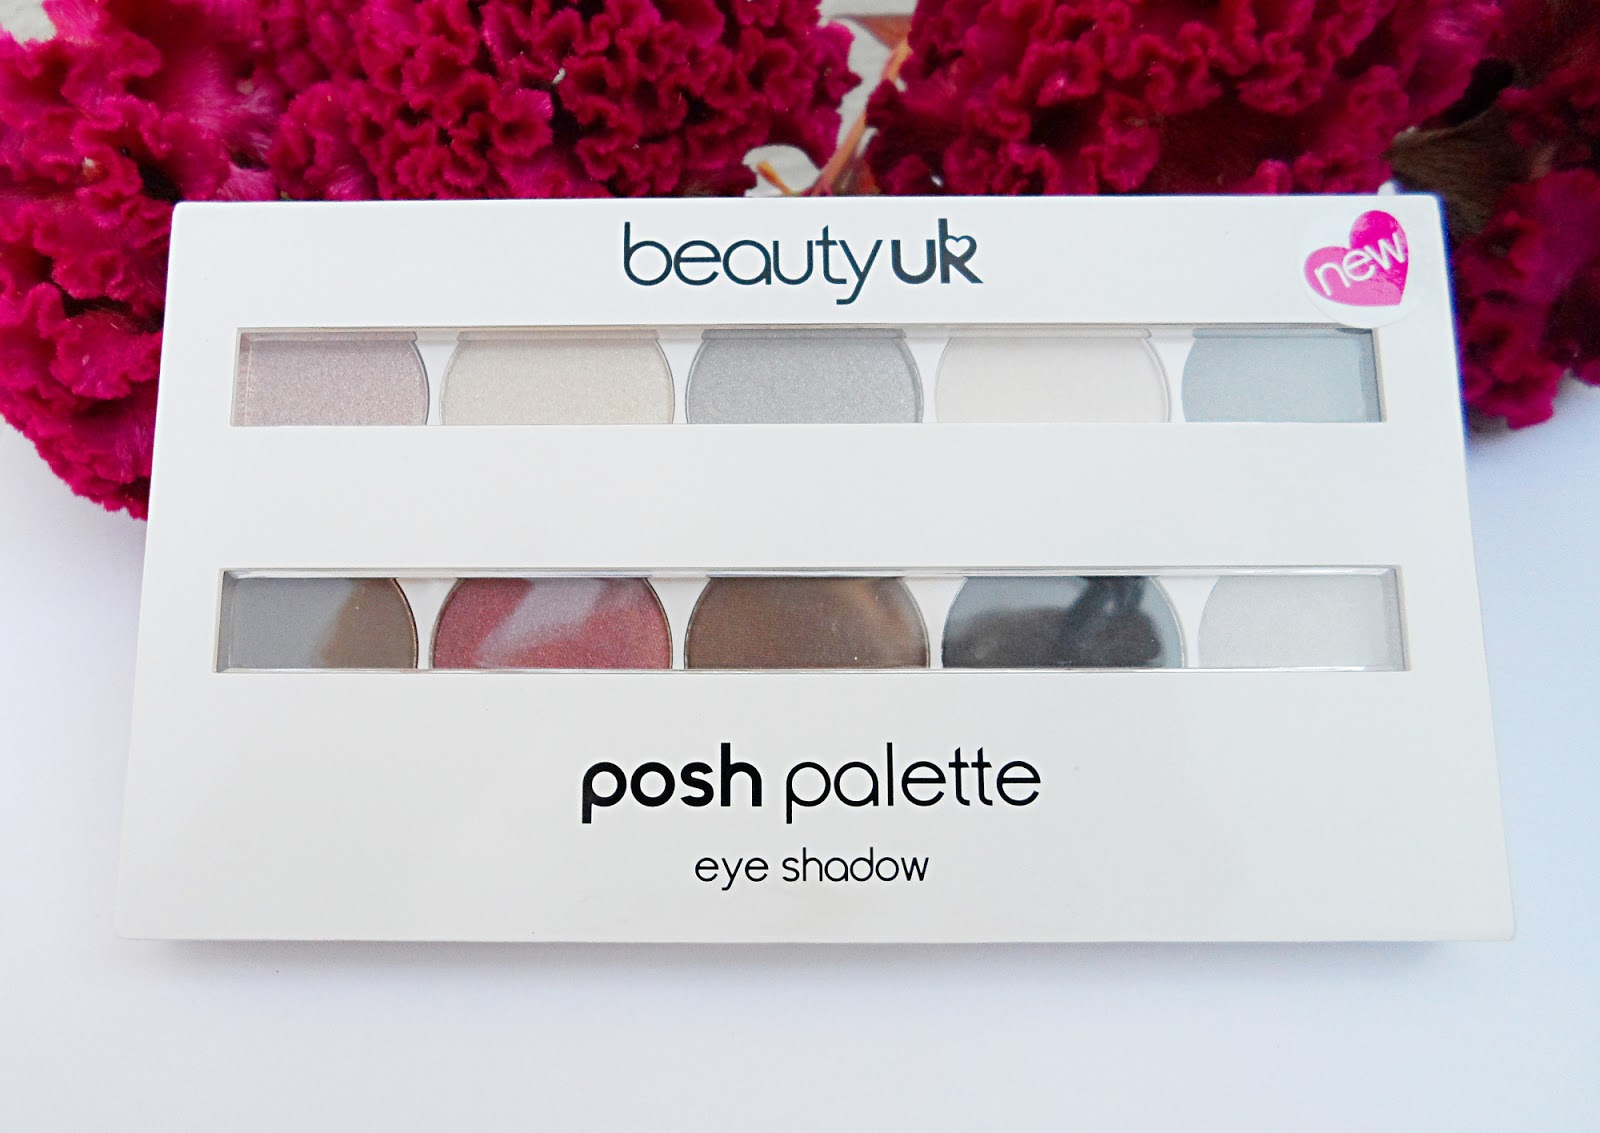 beauty uk cosmetics review swatches palette Beauty UK Posh Palette / Review & Swatches liz breygel january girl